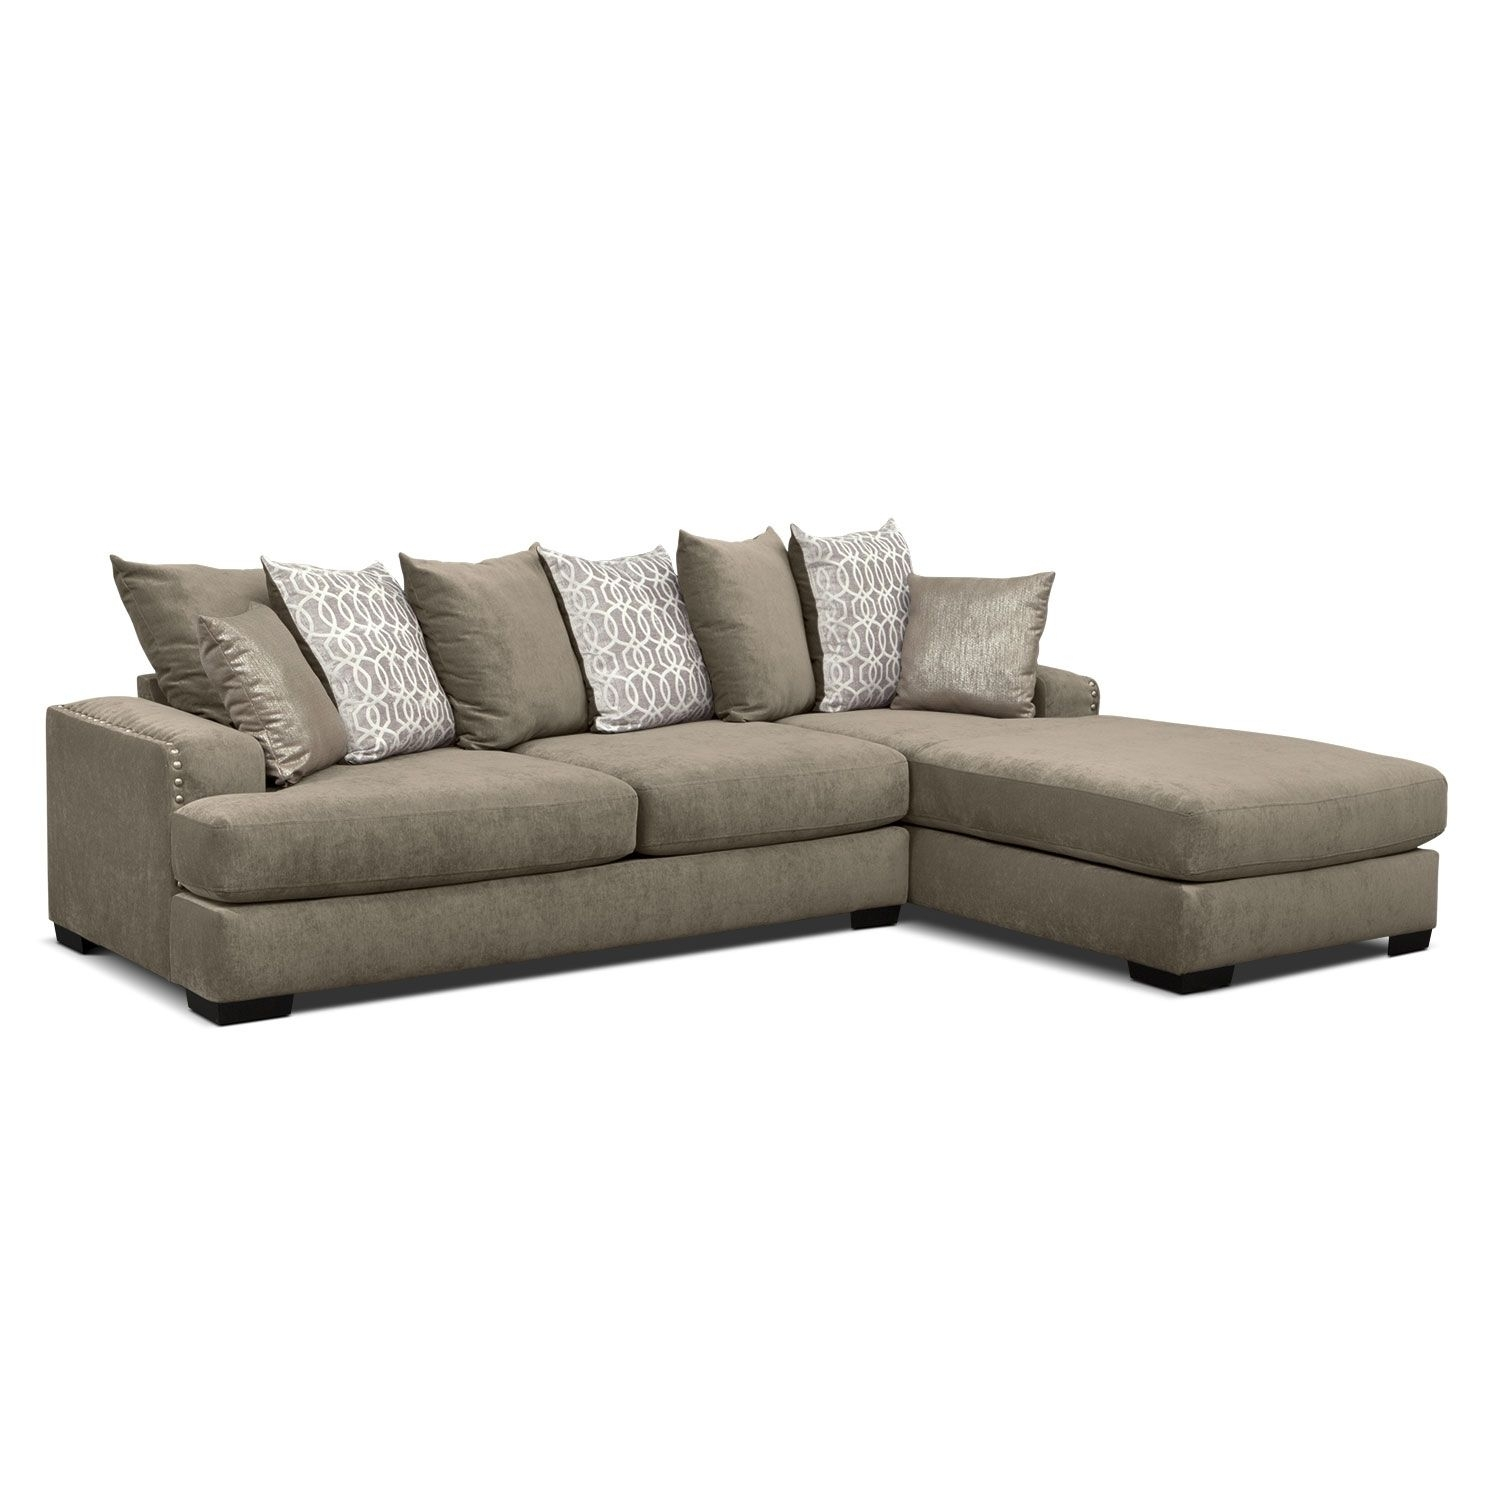 Vcf Sofa Chaise | Baci Living Room with regard to Mcdade Graphite 2 Piece Sectionals With Laf Chaise (Image 27 of 30)